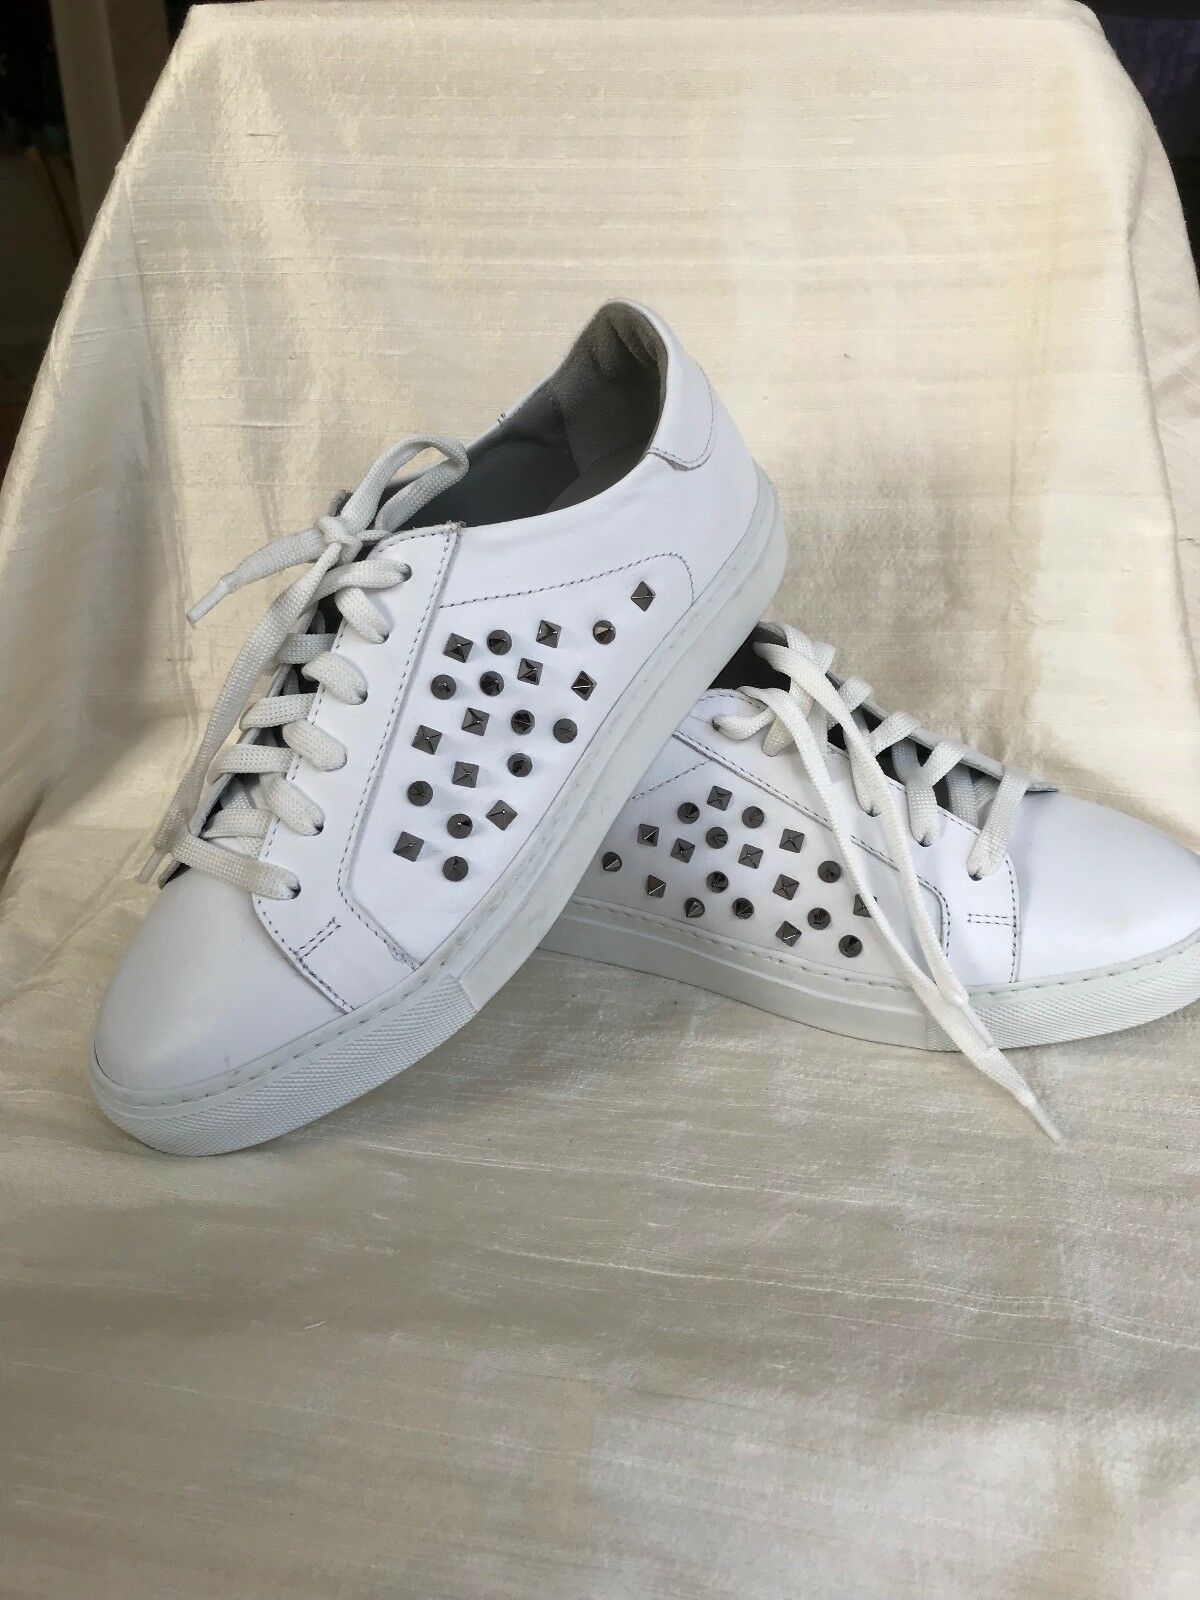 Boemos Low Top Studded blanc baskets (Taille 8.5 EUR 39)